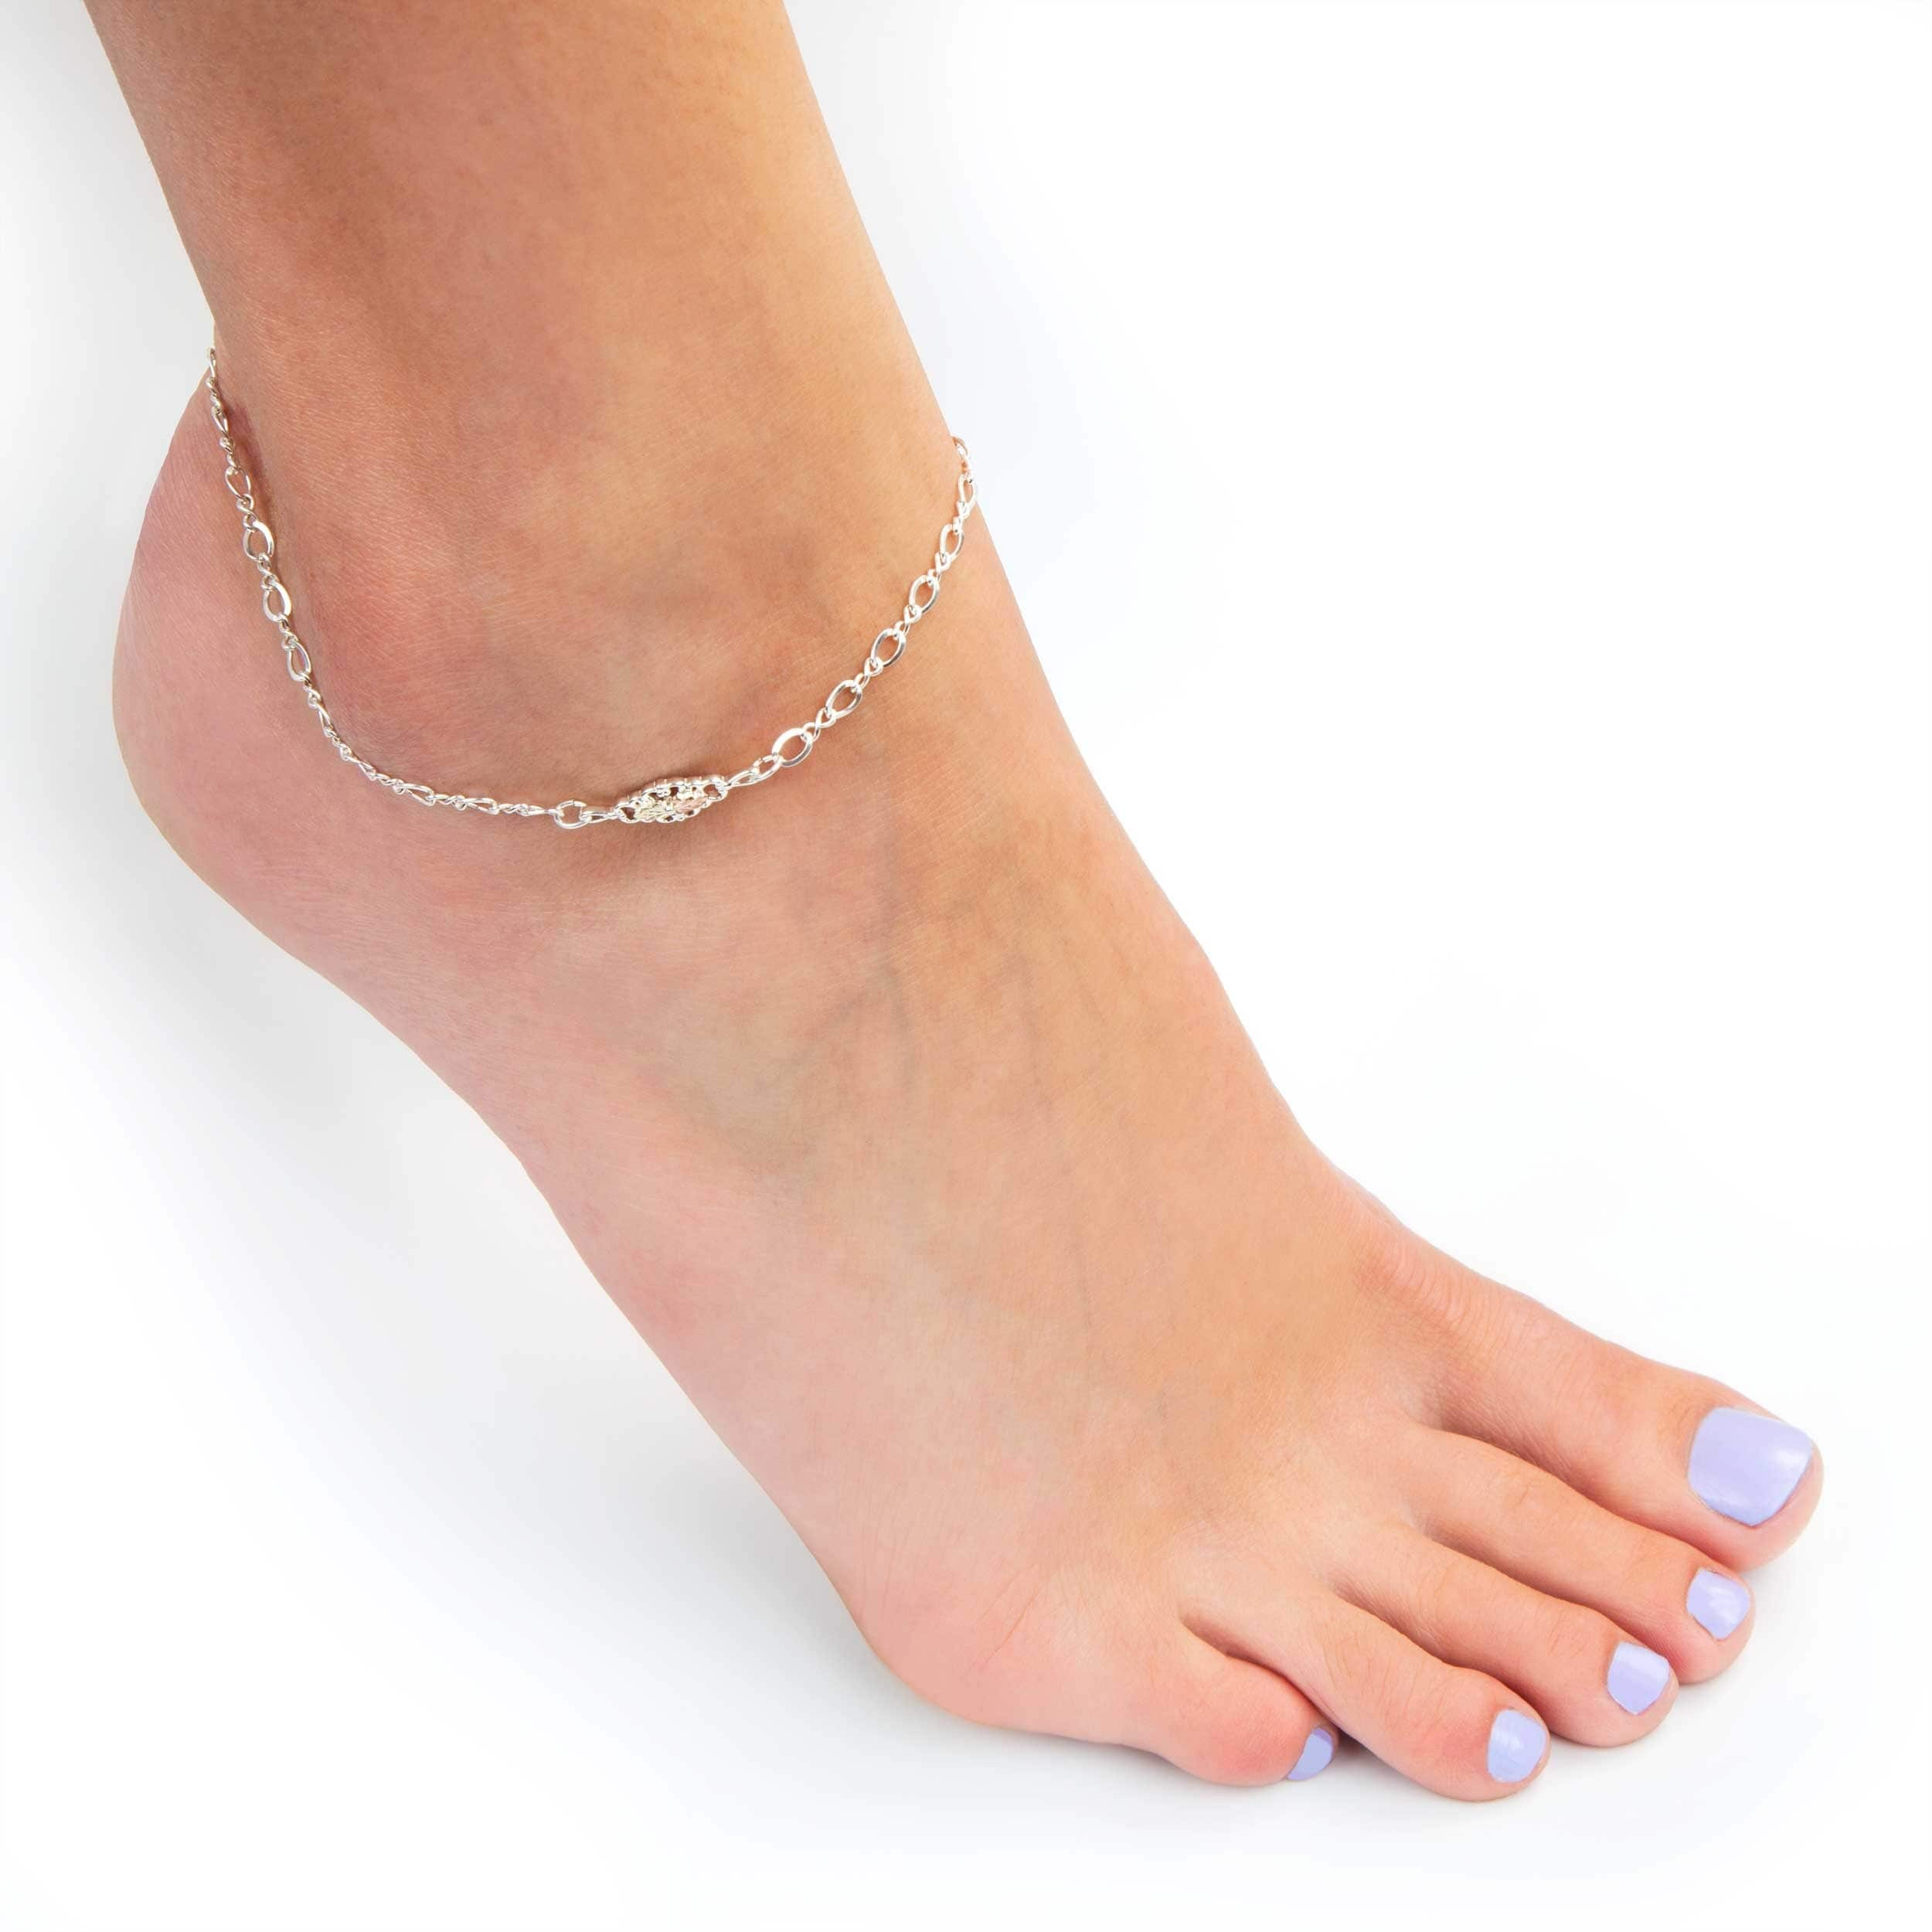 jewelry product rope anklet layering hugerect dainty bracelet gold delicate ankle filled foot chain